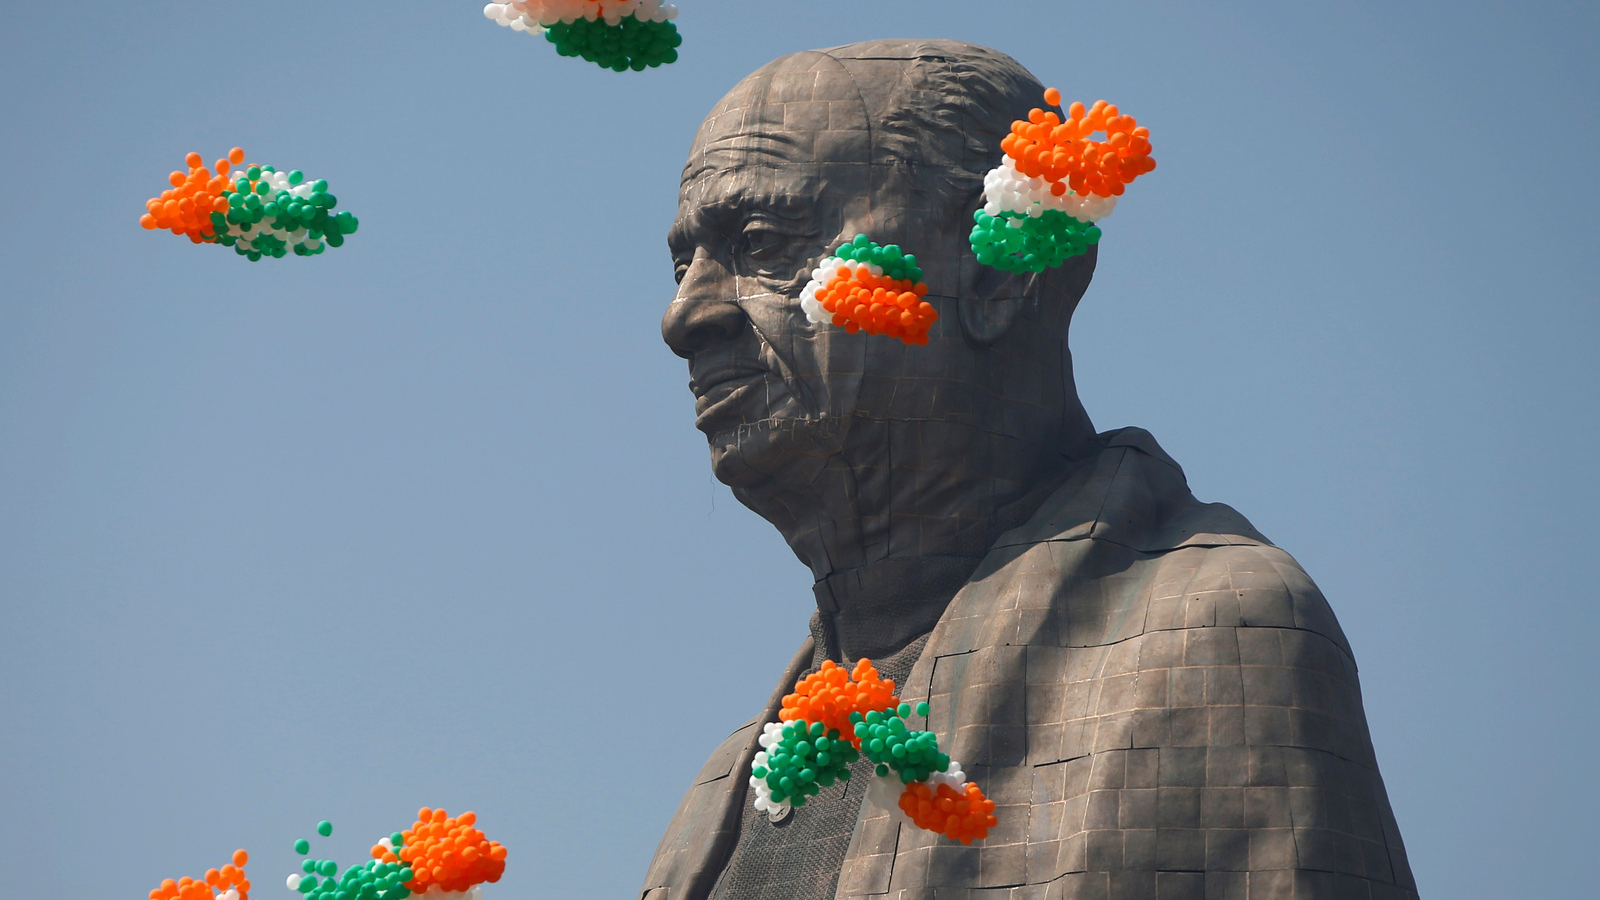 Indian tri-colored balloons fly around a statue head of Indian founding father Sardar Vallabhbhai Patel